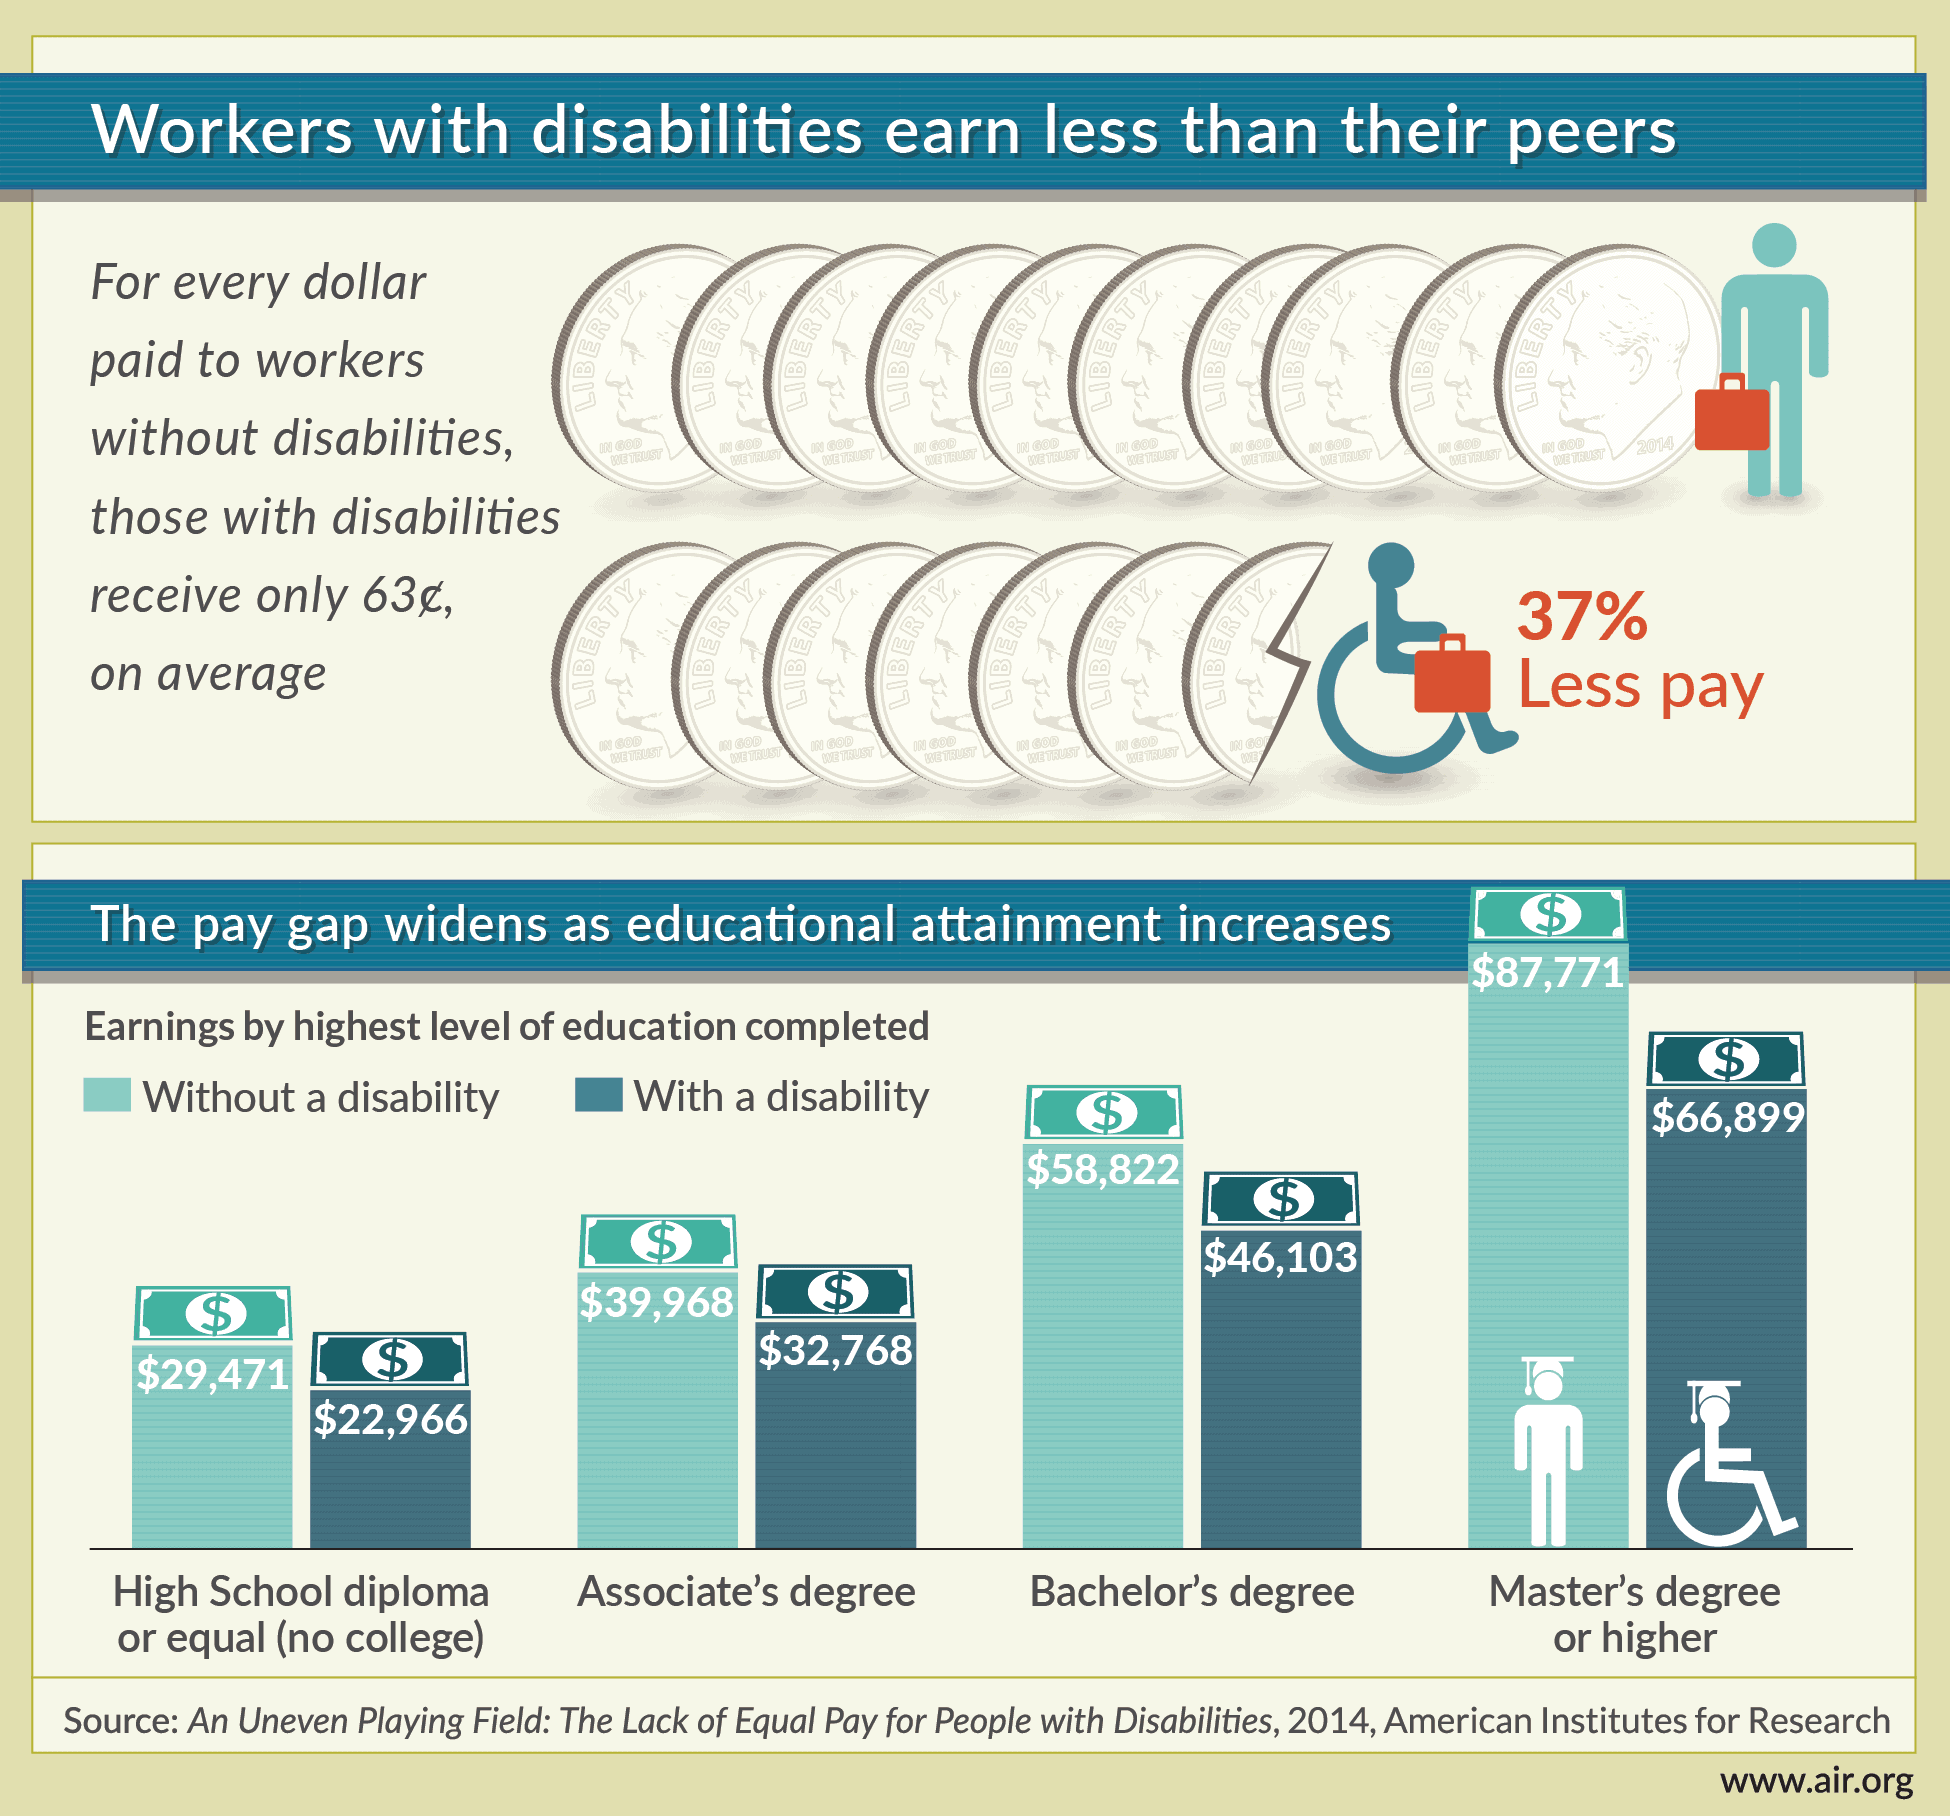 Graph showing that workers with disabilities earn less than their able bodied peers